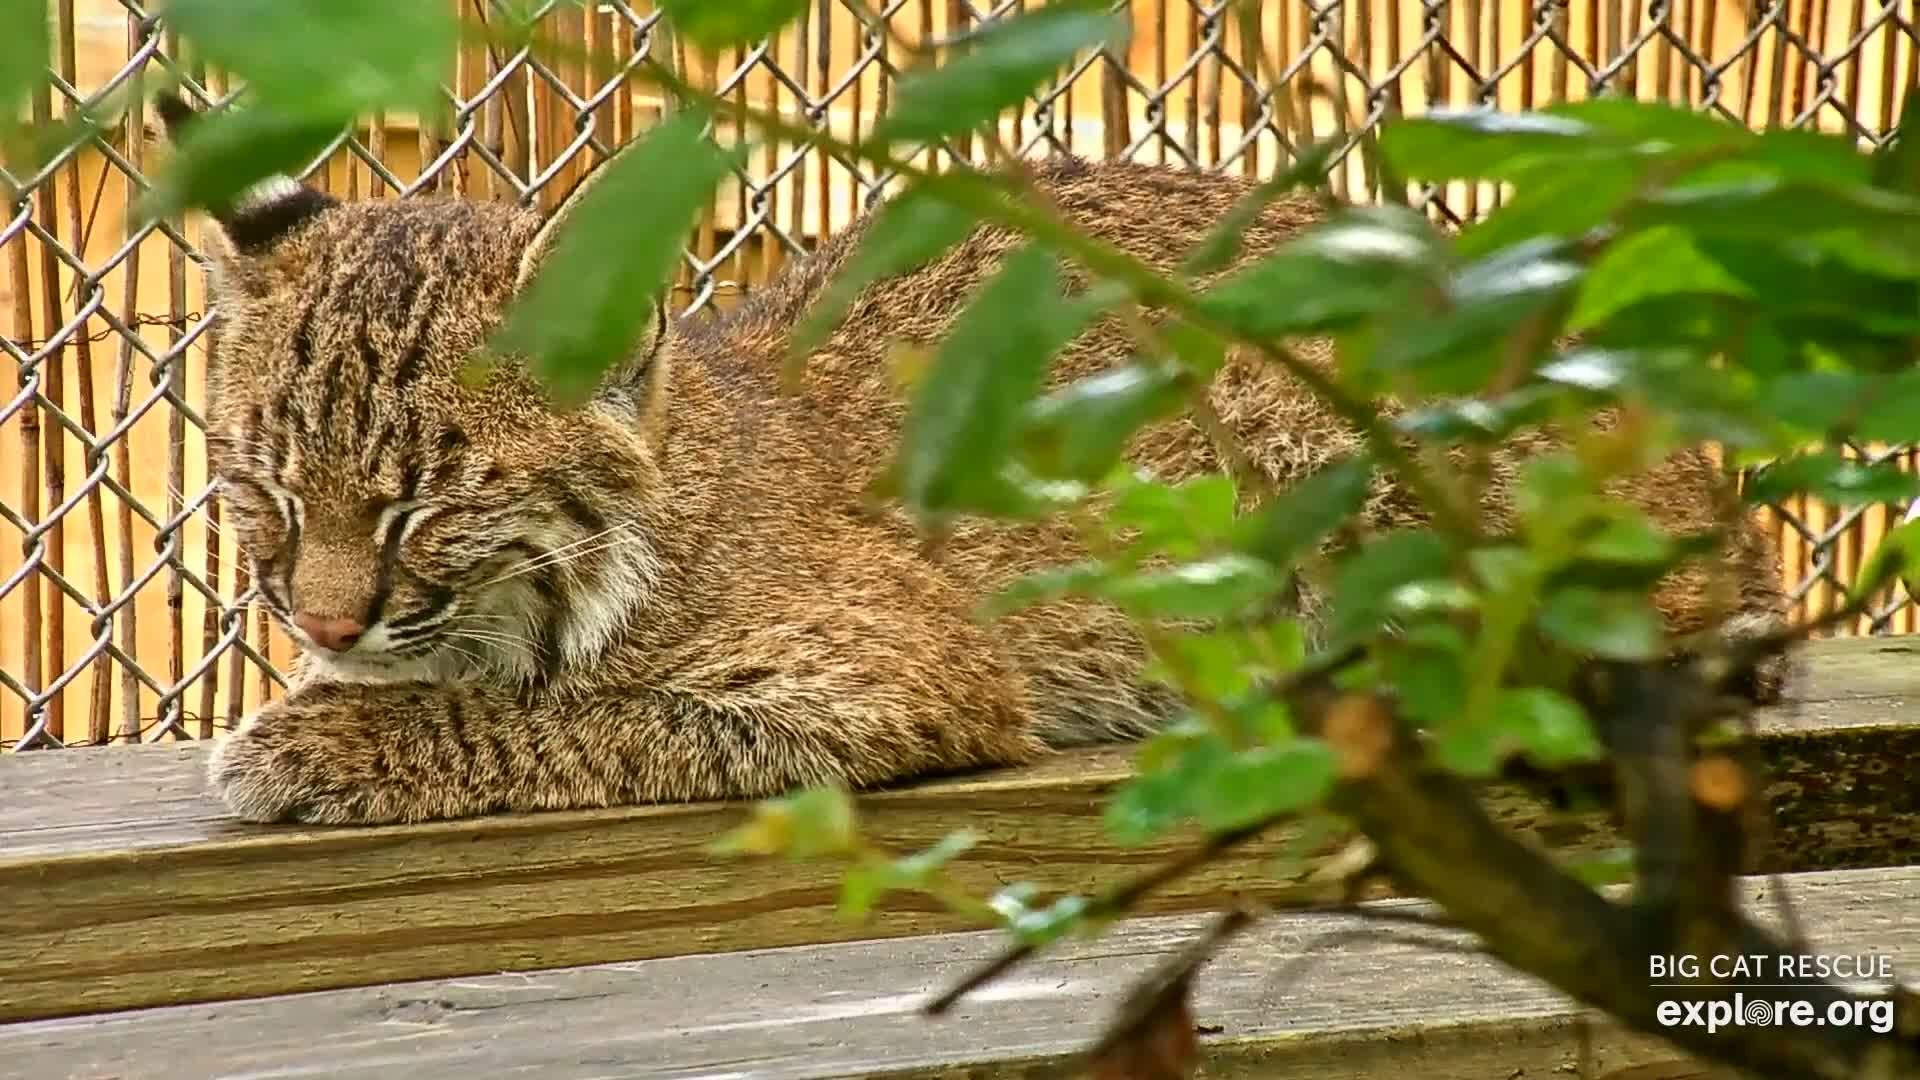 I M Watching The Big Cat Rescue Cam Streaming Live On Explore Org Big Cat Rescue Cat Rescue Big Cats